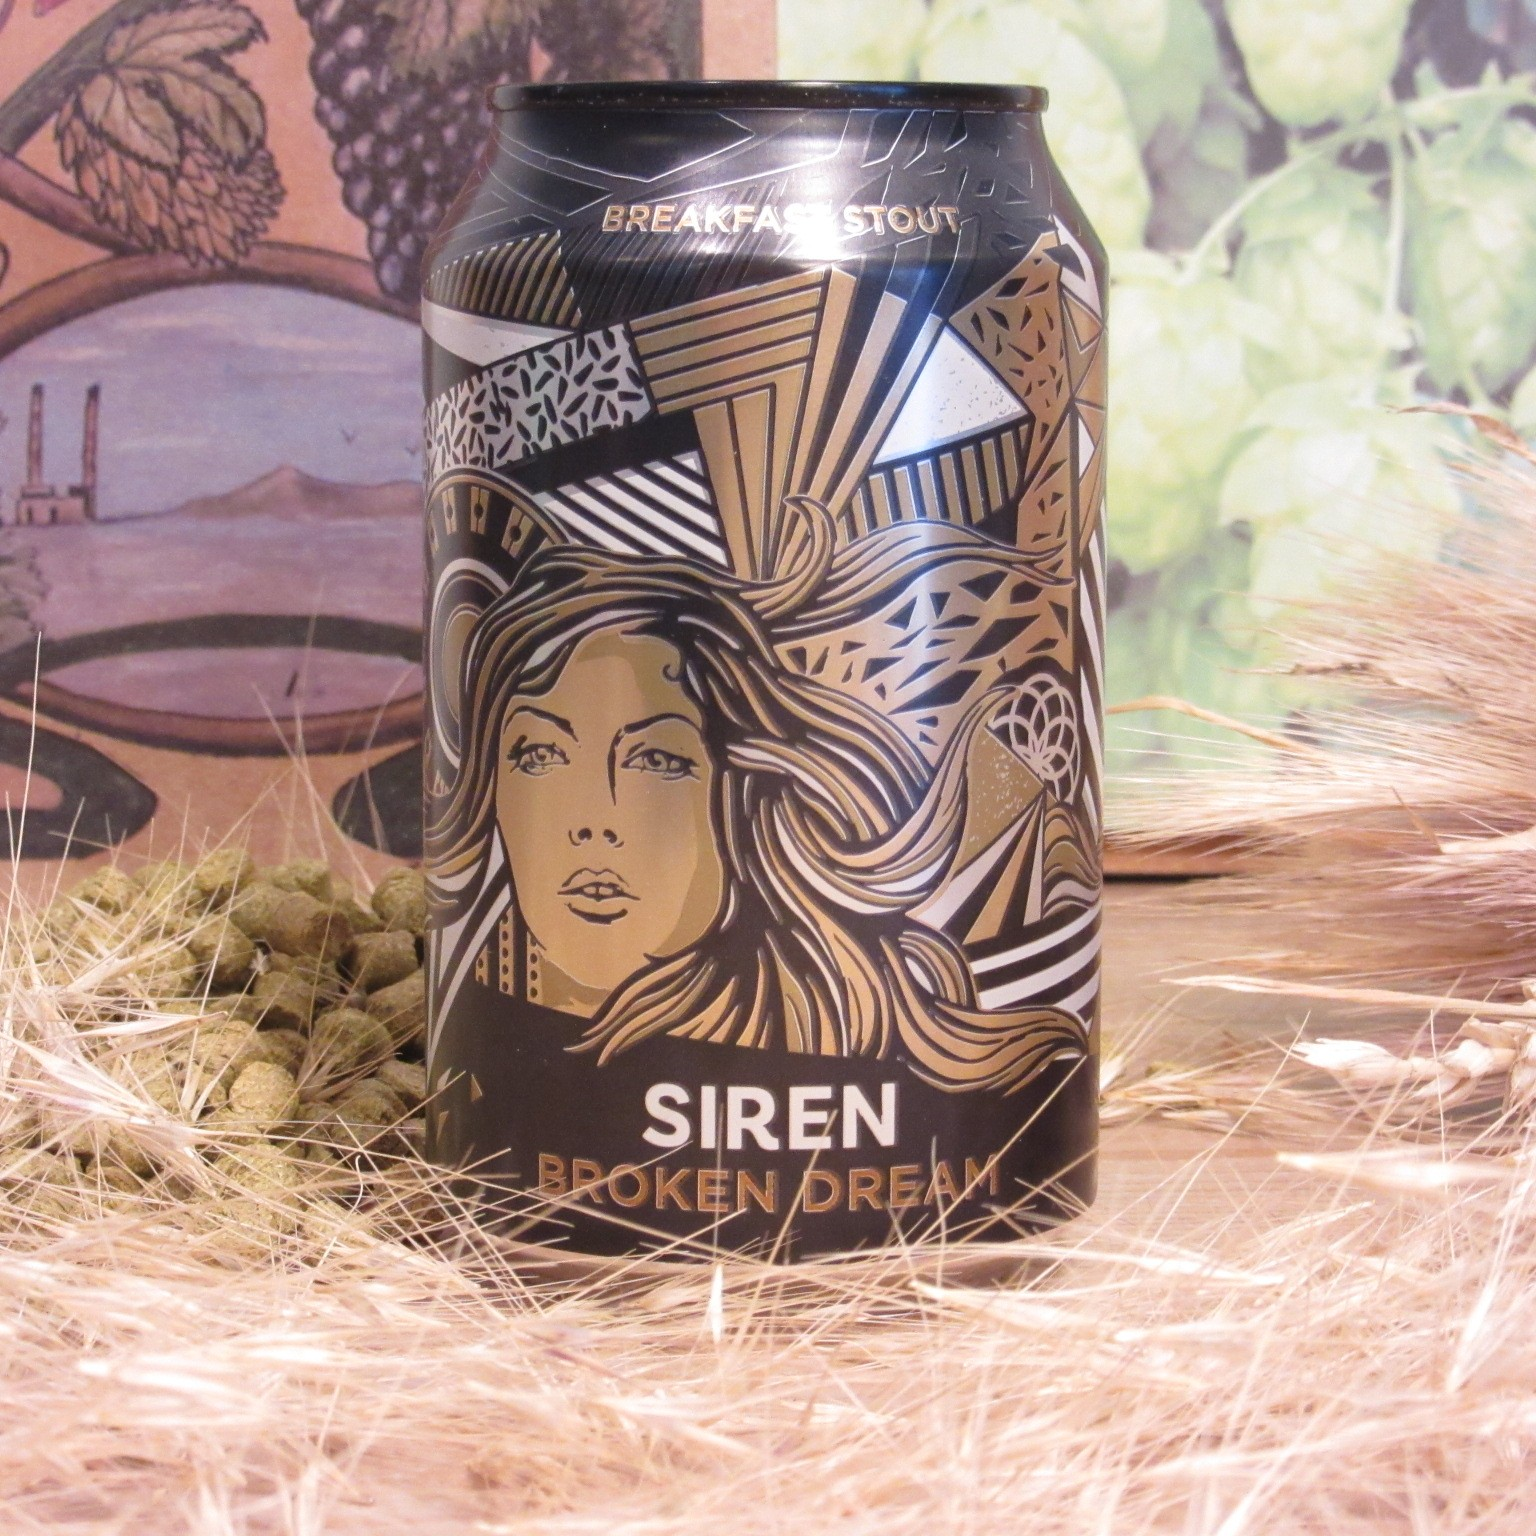 Siren Broken Dream Breakfast Stout